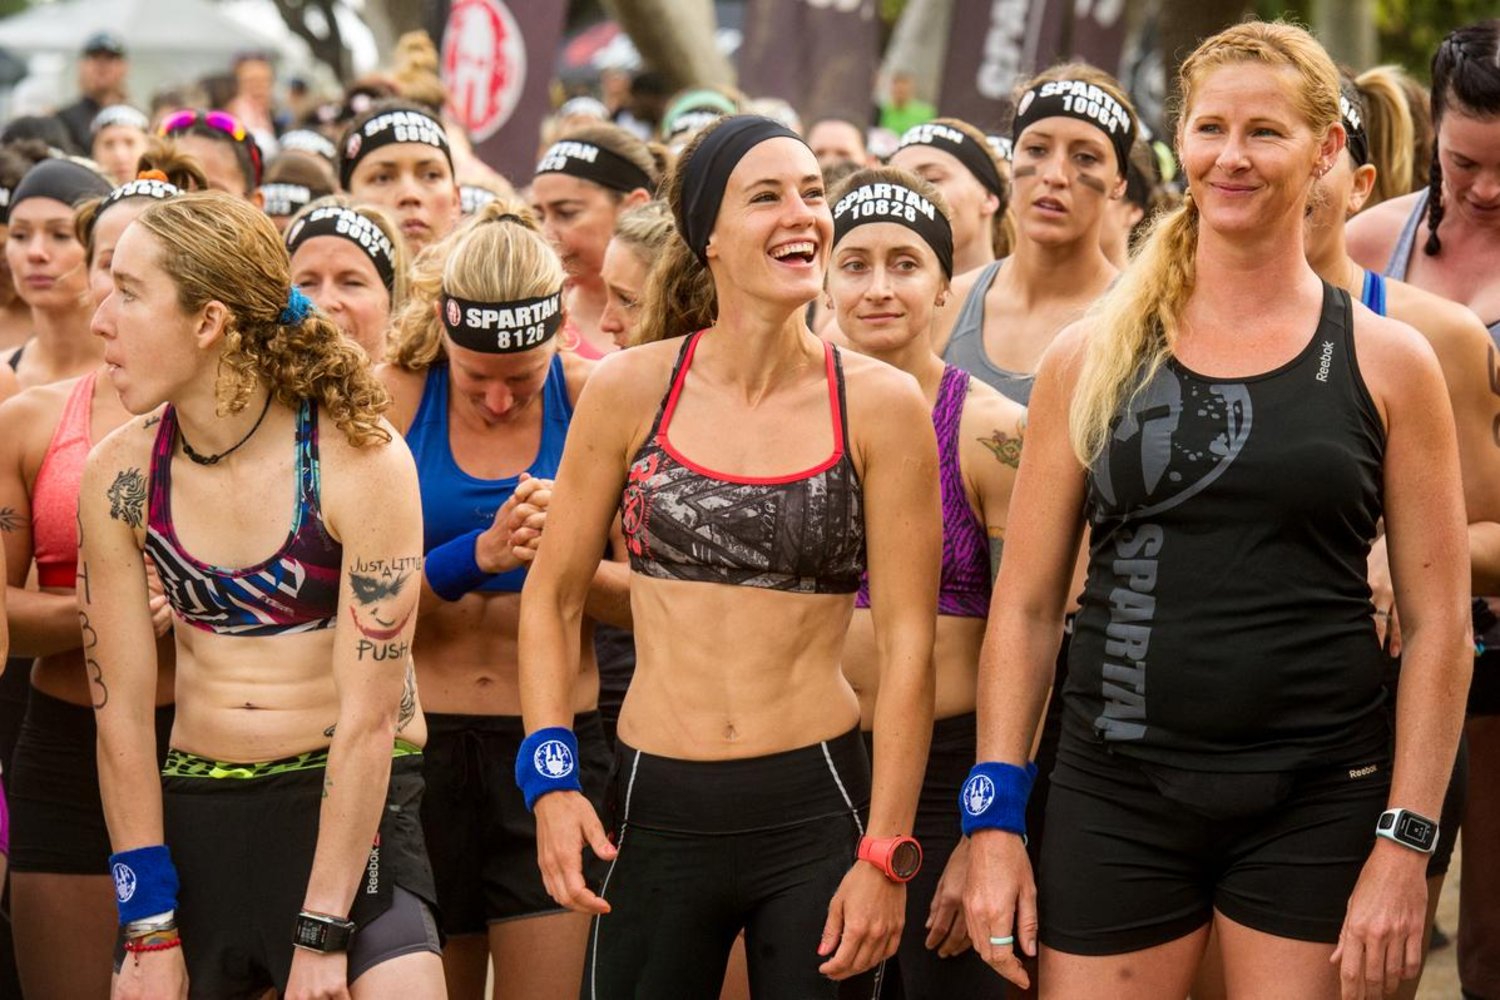 11 hacks and insider tips from an obstacle racing world champ